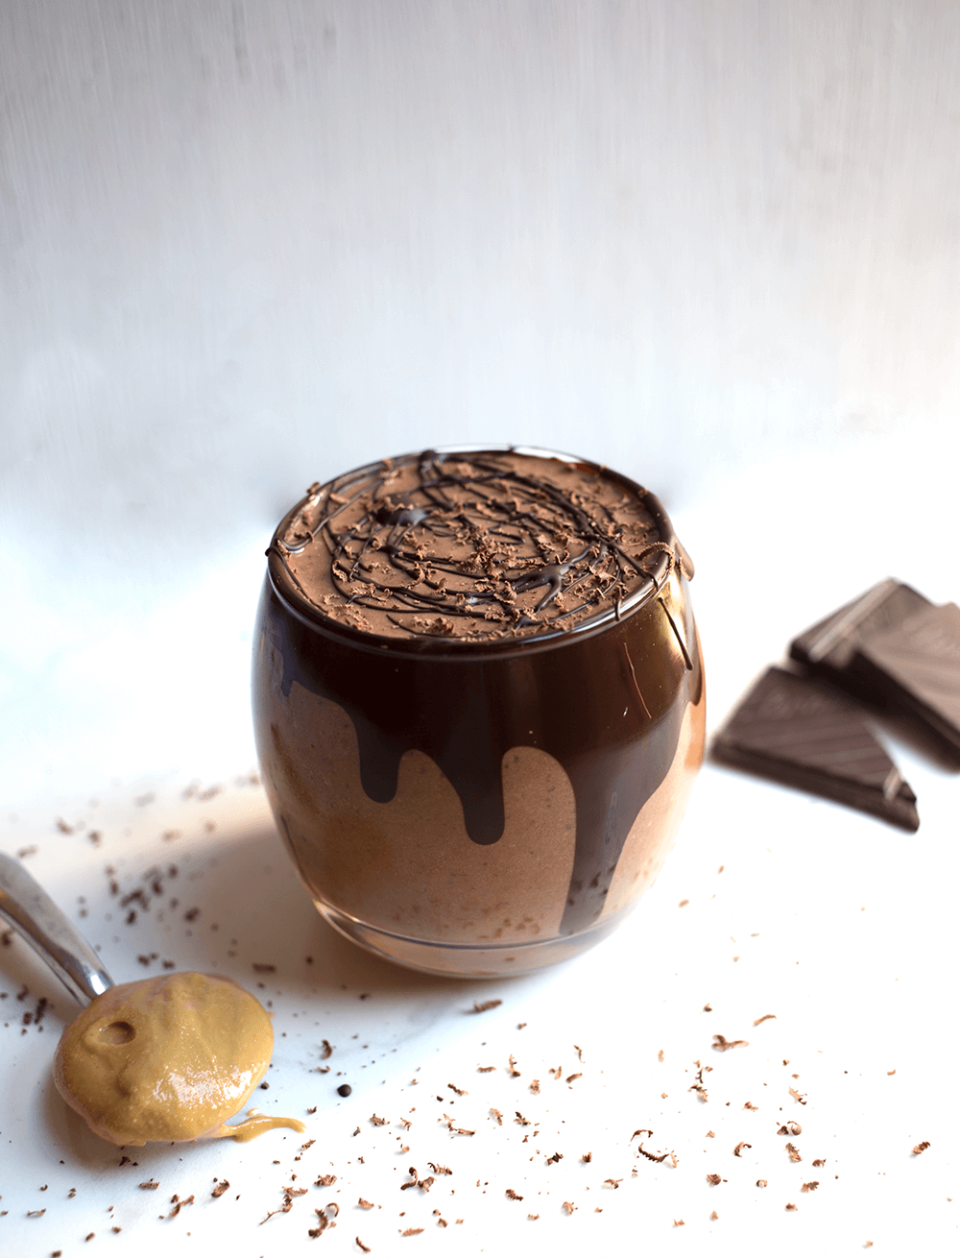 Vegan Peanut Butter and Chocolate Bomb Smoothie